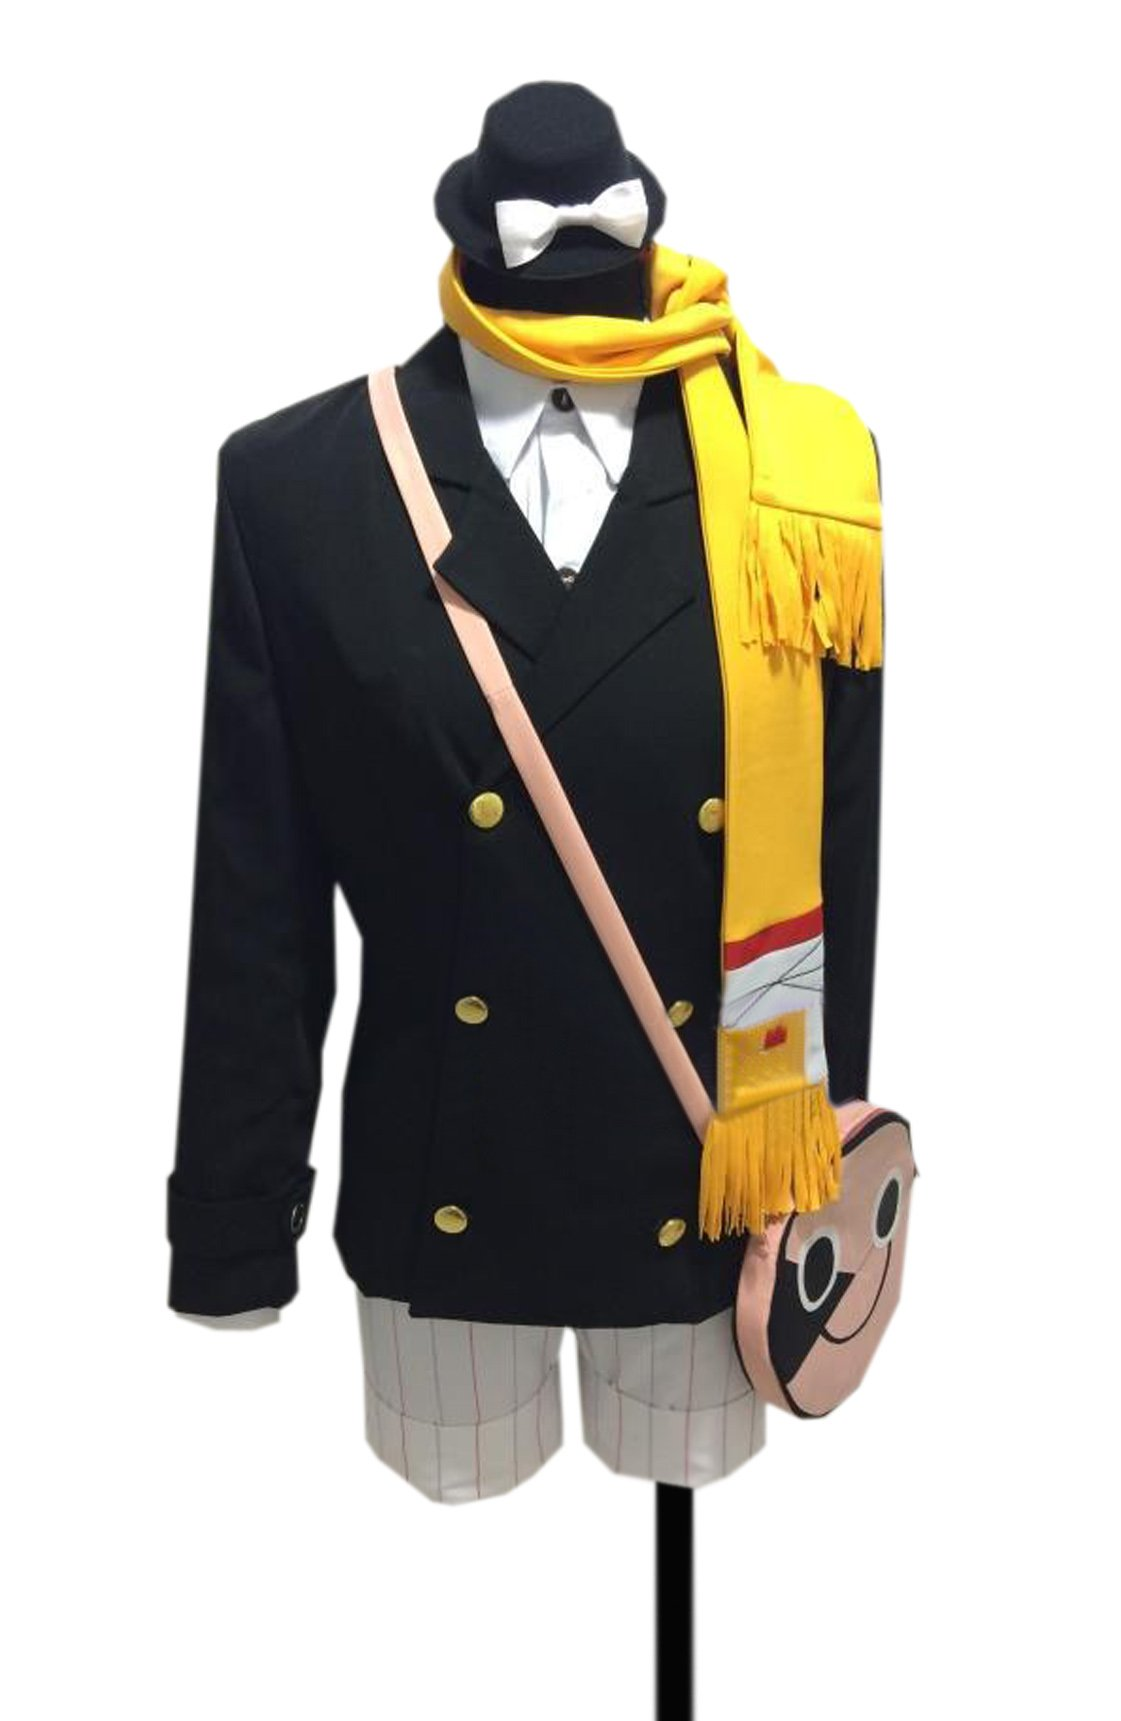 Dreamcosplay Animation Bungo Stray Dogs Outfits Cosplay Costume